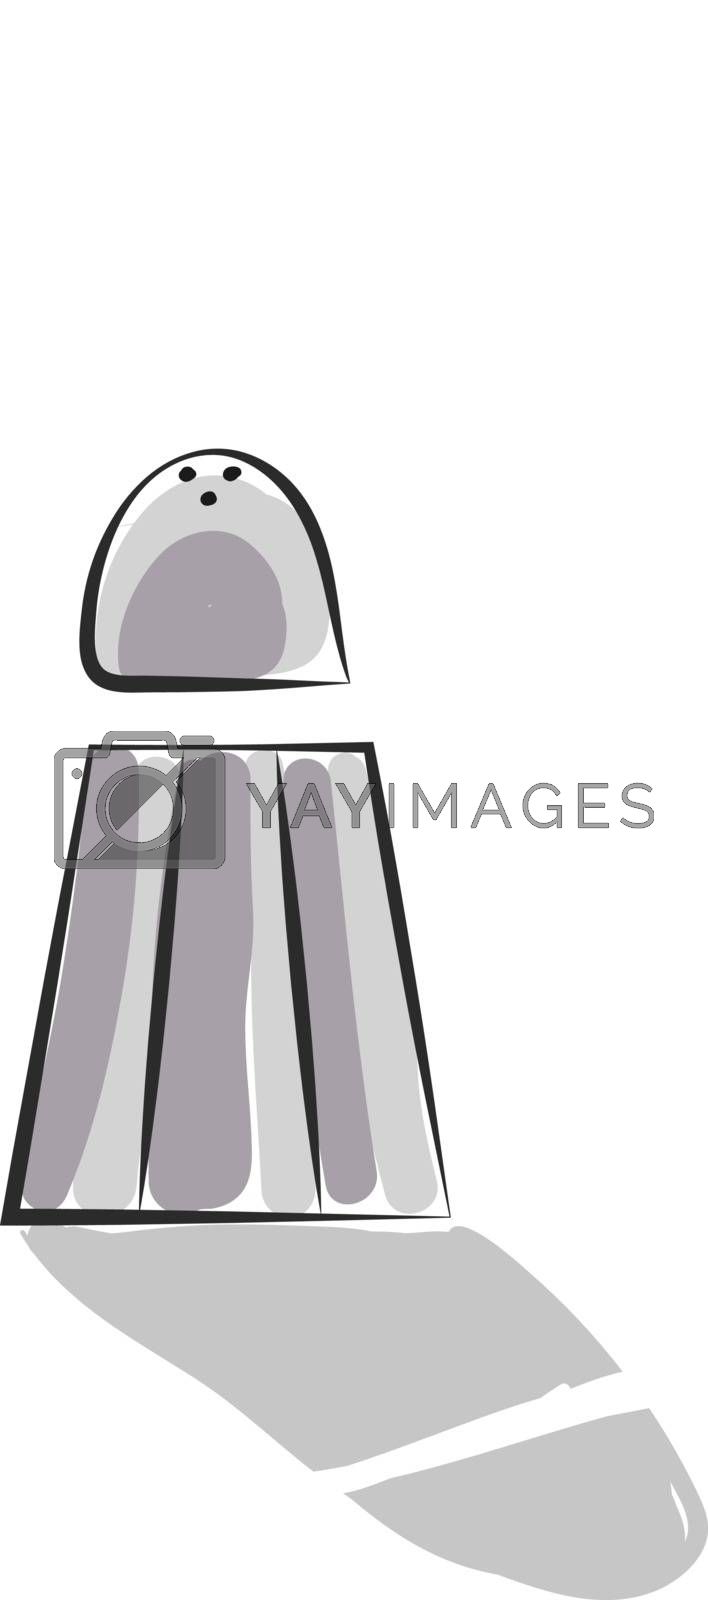 Royalty free image of Clipart of grey-colored salt shaker vector or color illustration by Morphart